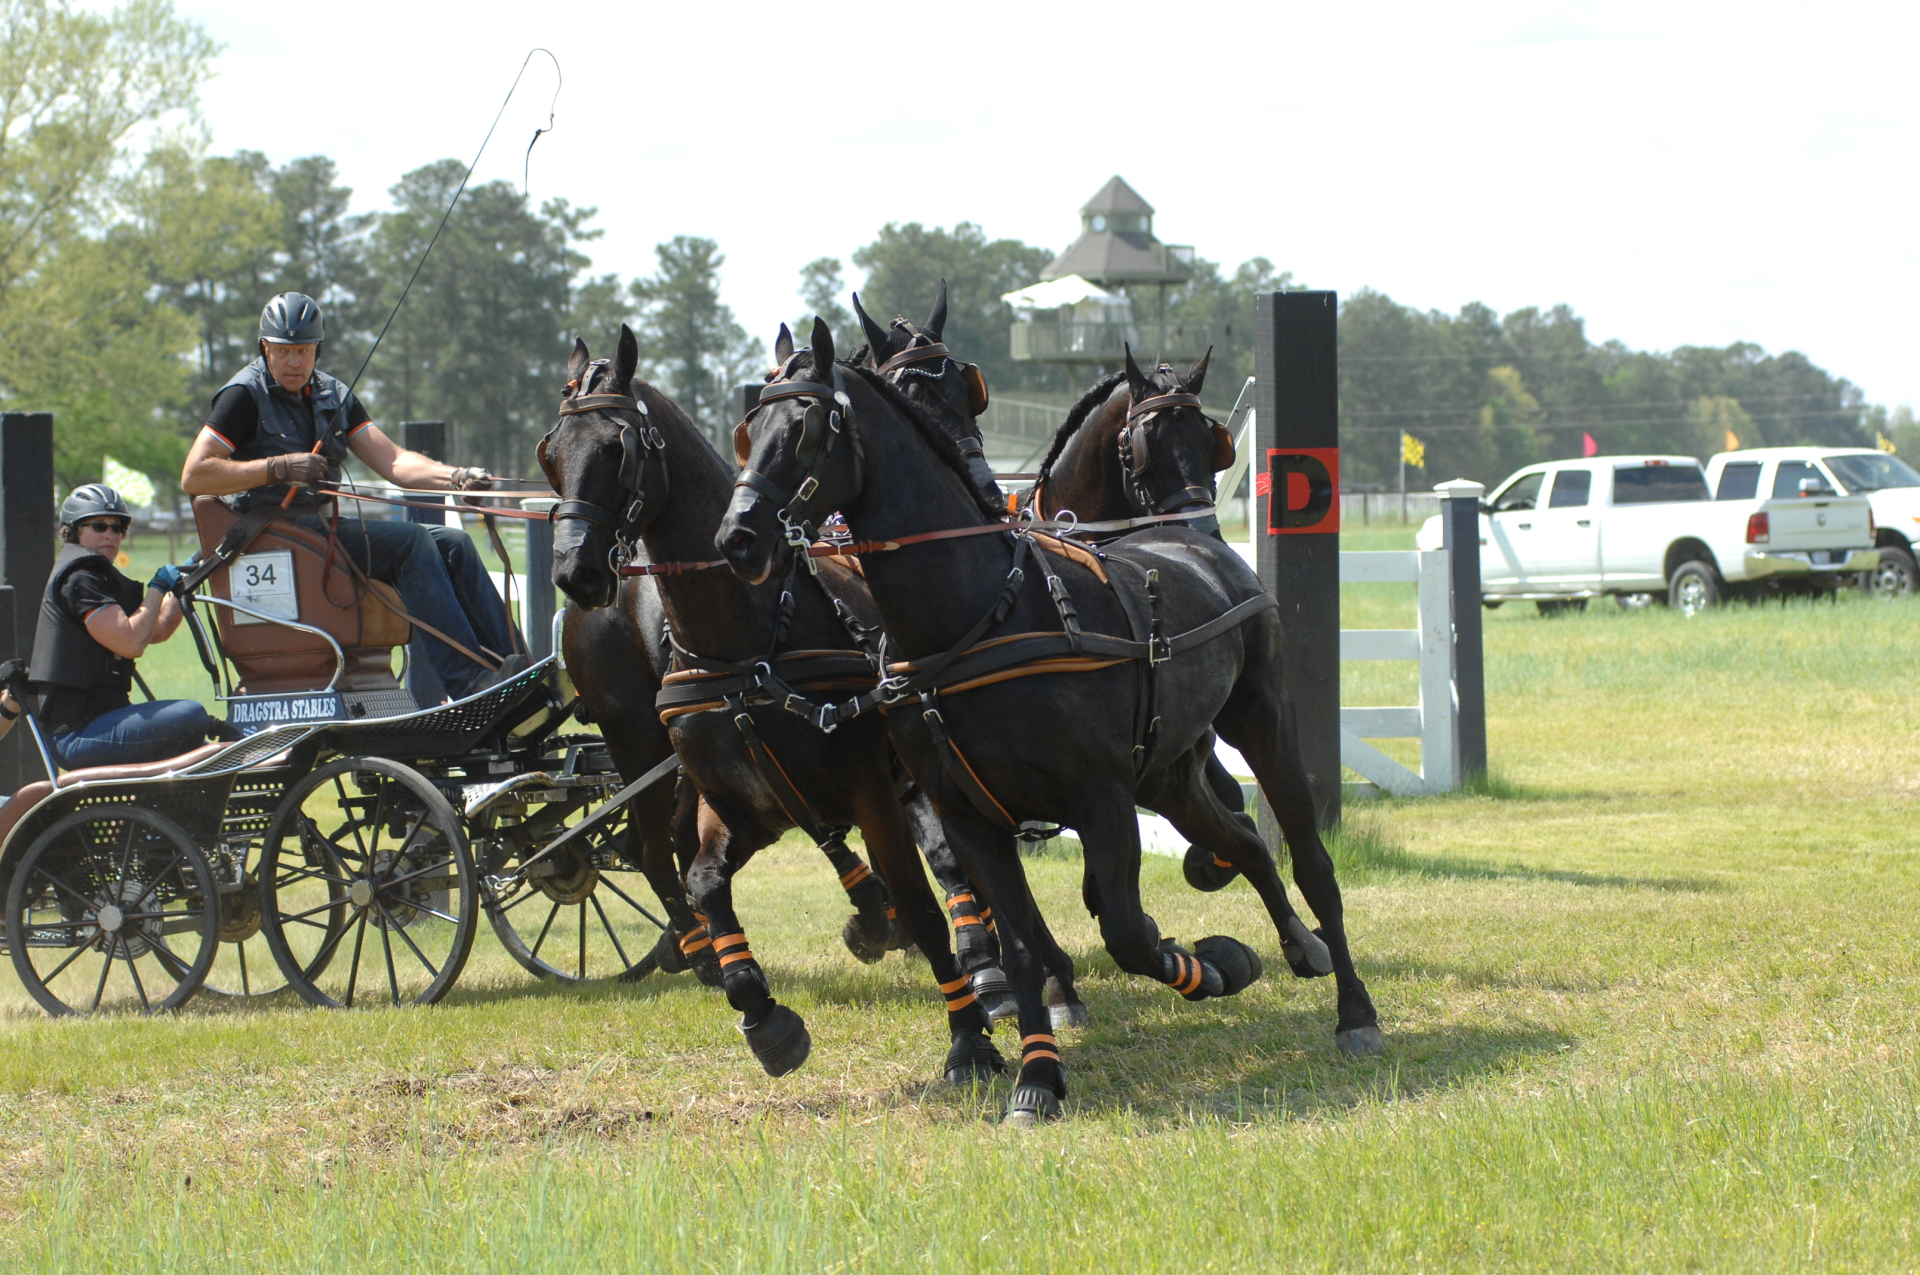 arabo-friesian-four-in-hand-dragstra-southern-pines-2017